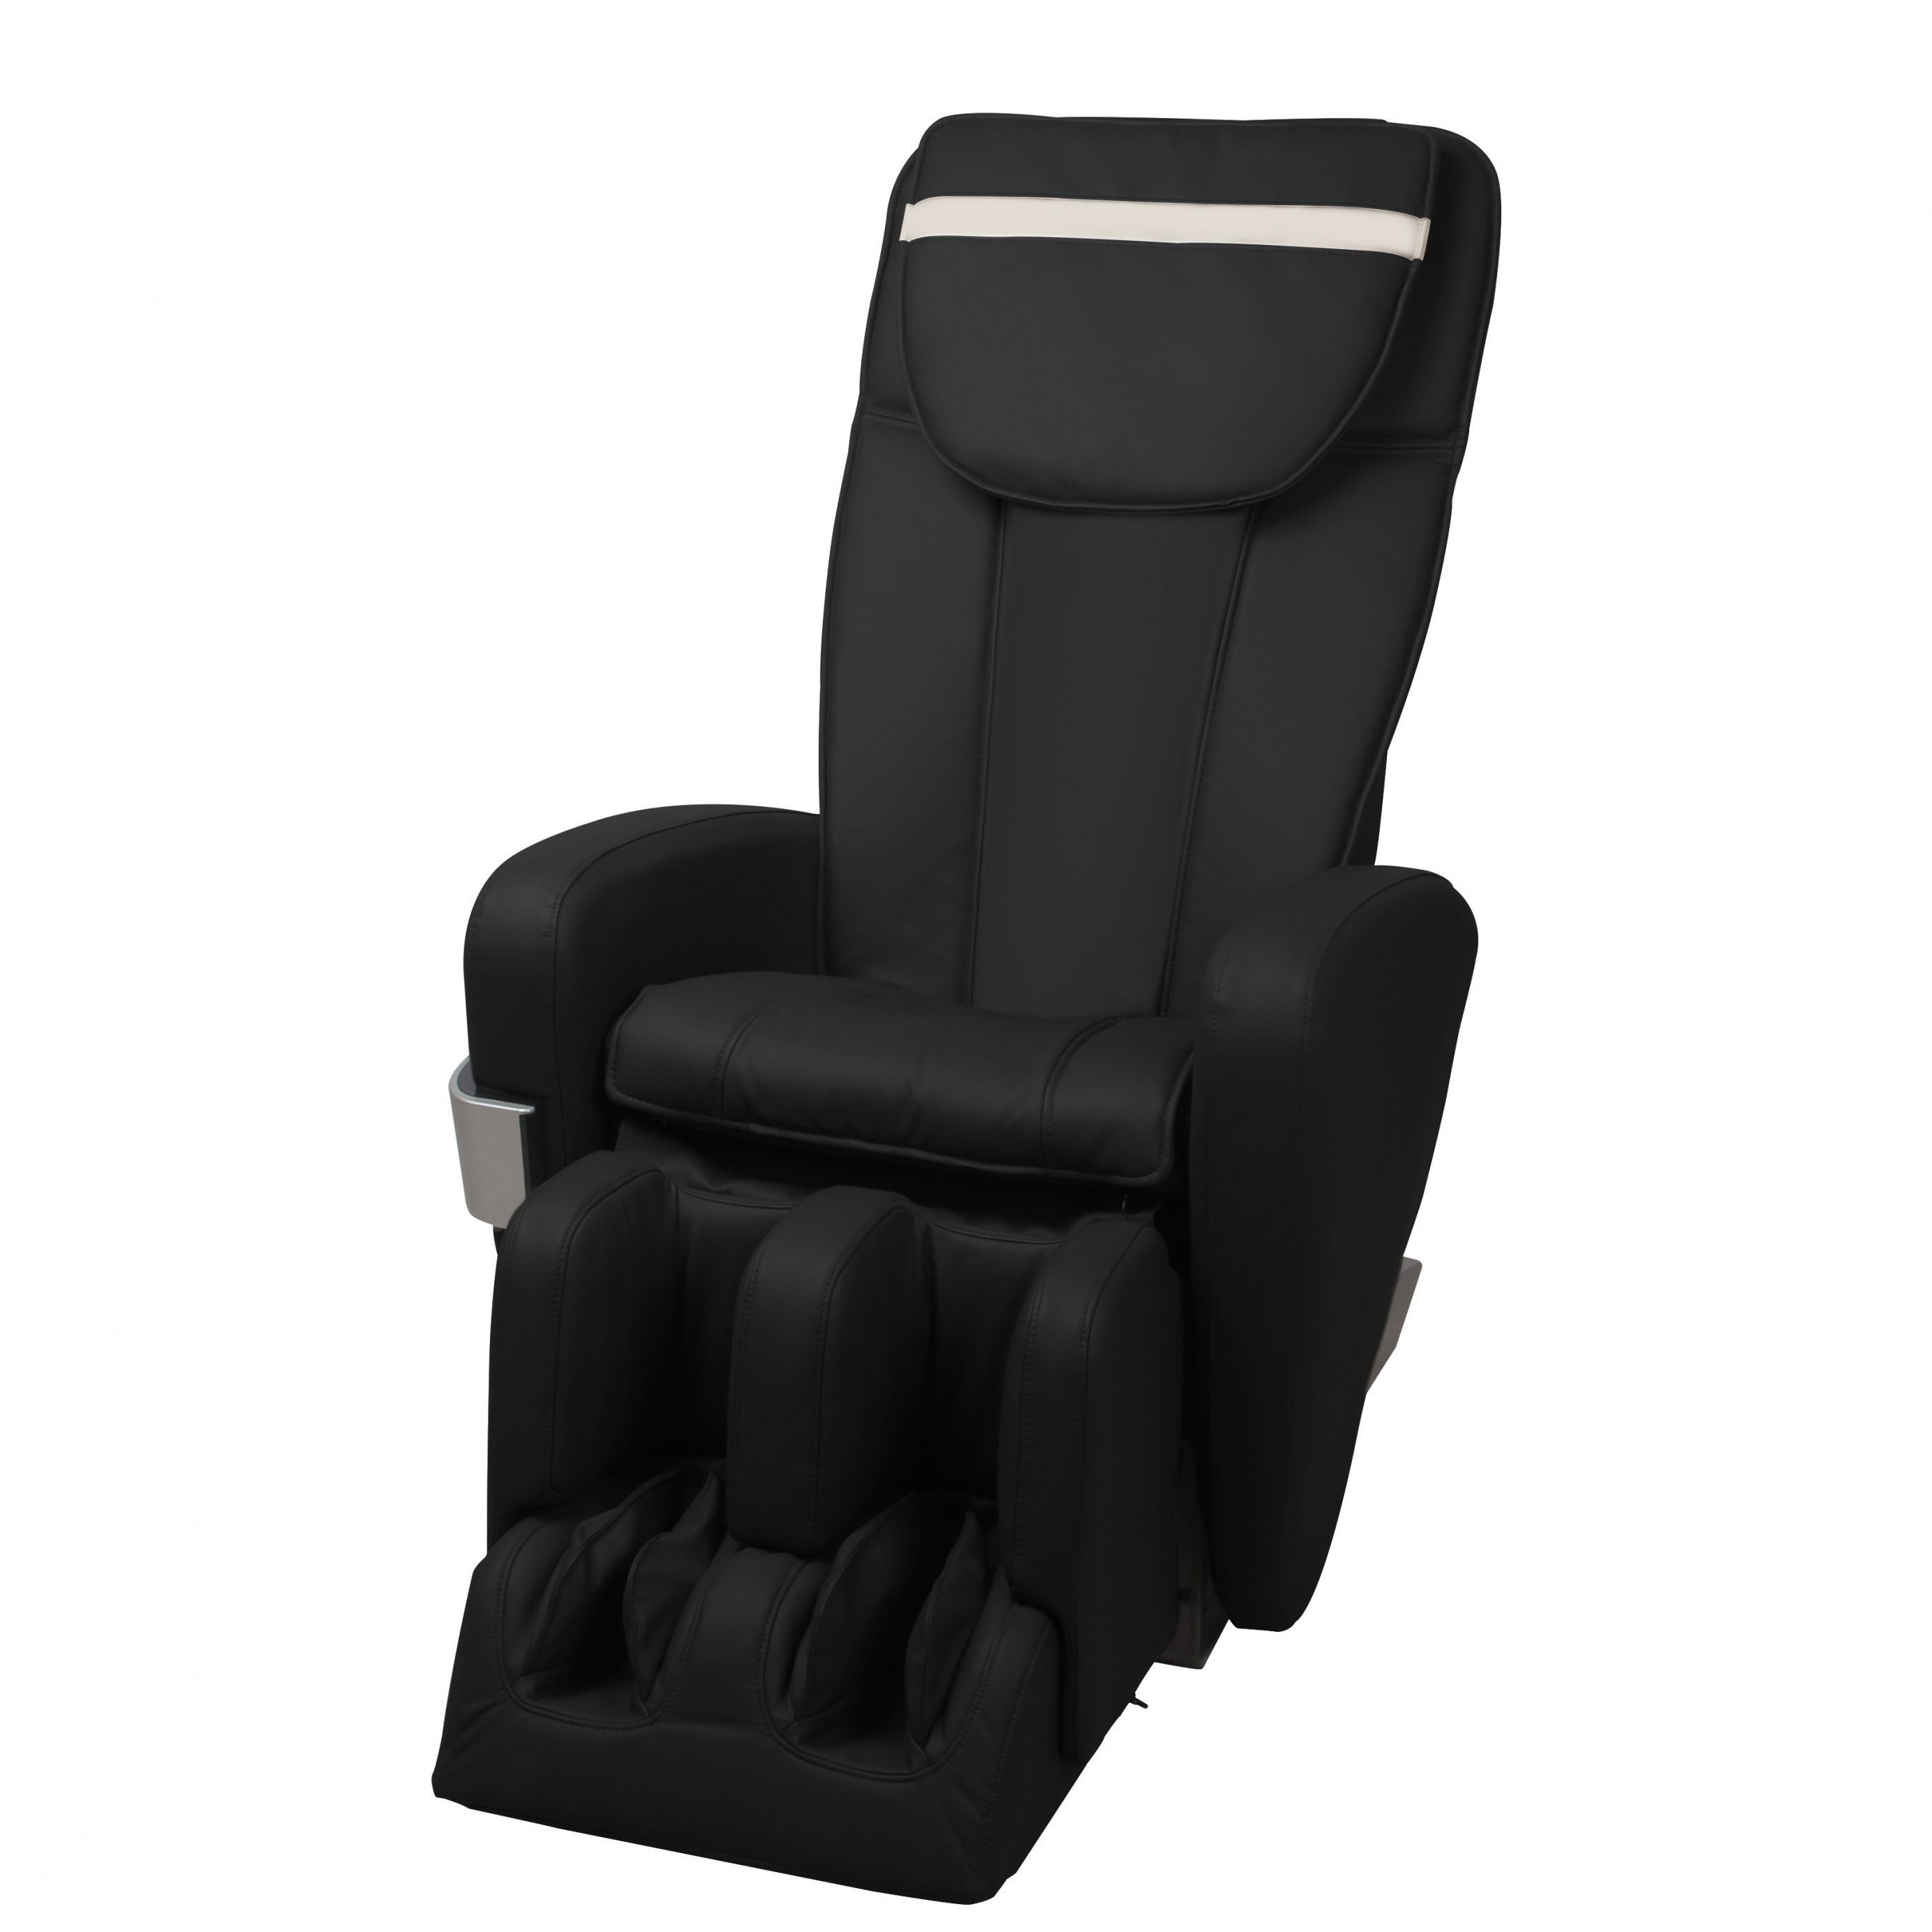 Foot Massage Chairs For Foot Massage Sofa Chairs (Image 2 of 15)